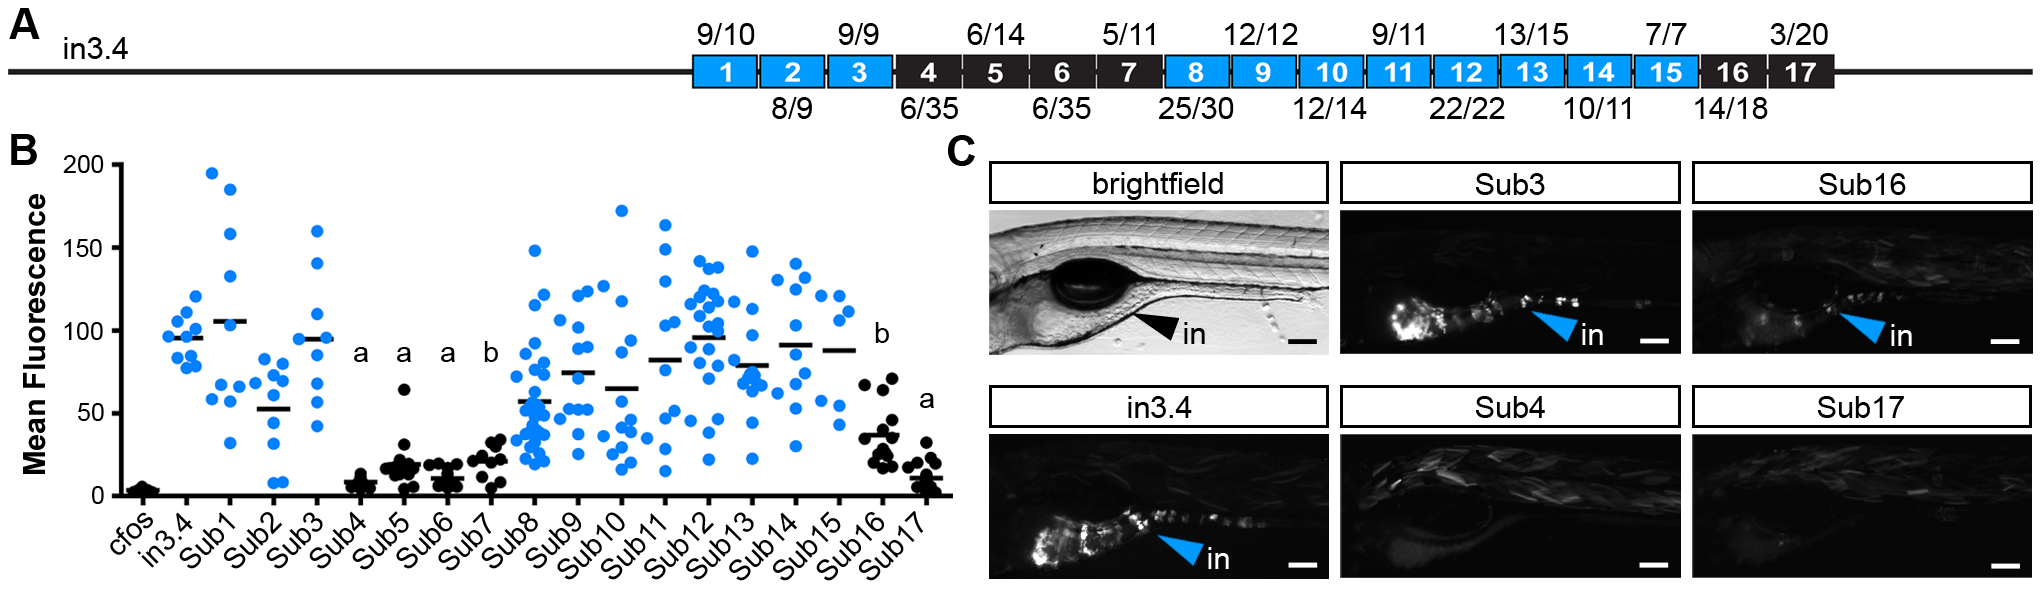 Site-directed mutagenesis defines DNA motifs required for intestinal expression.